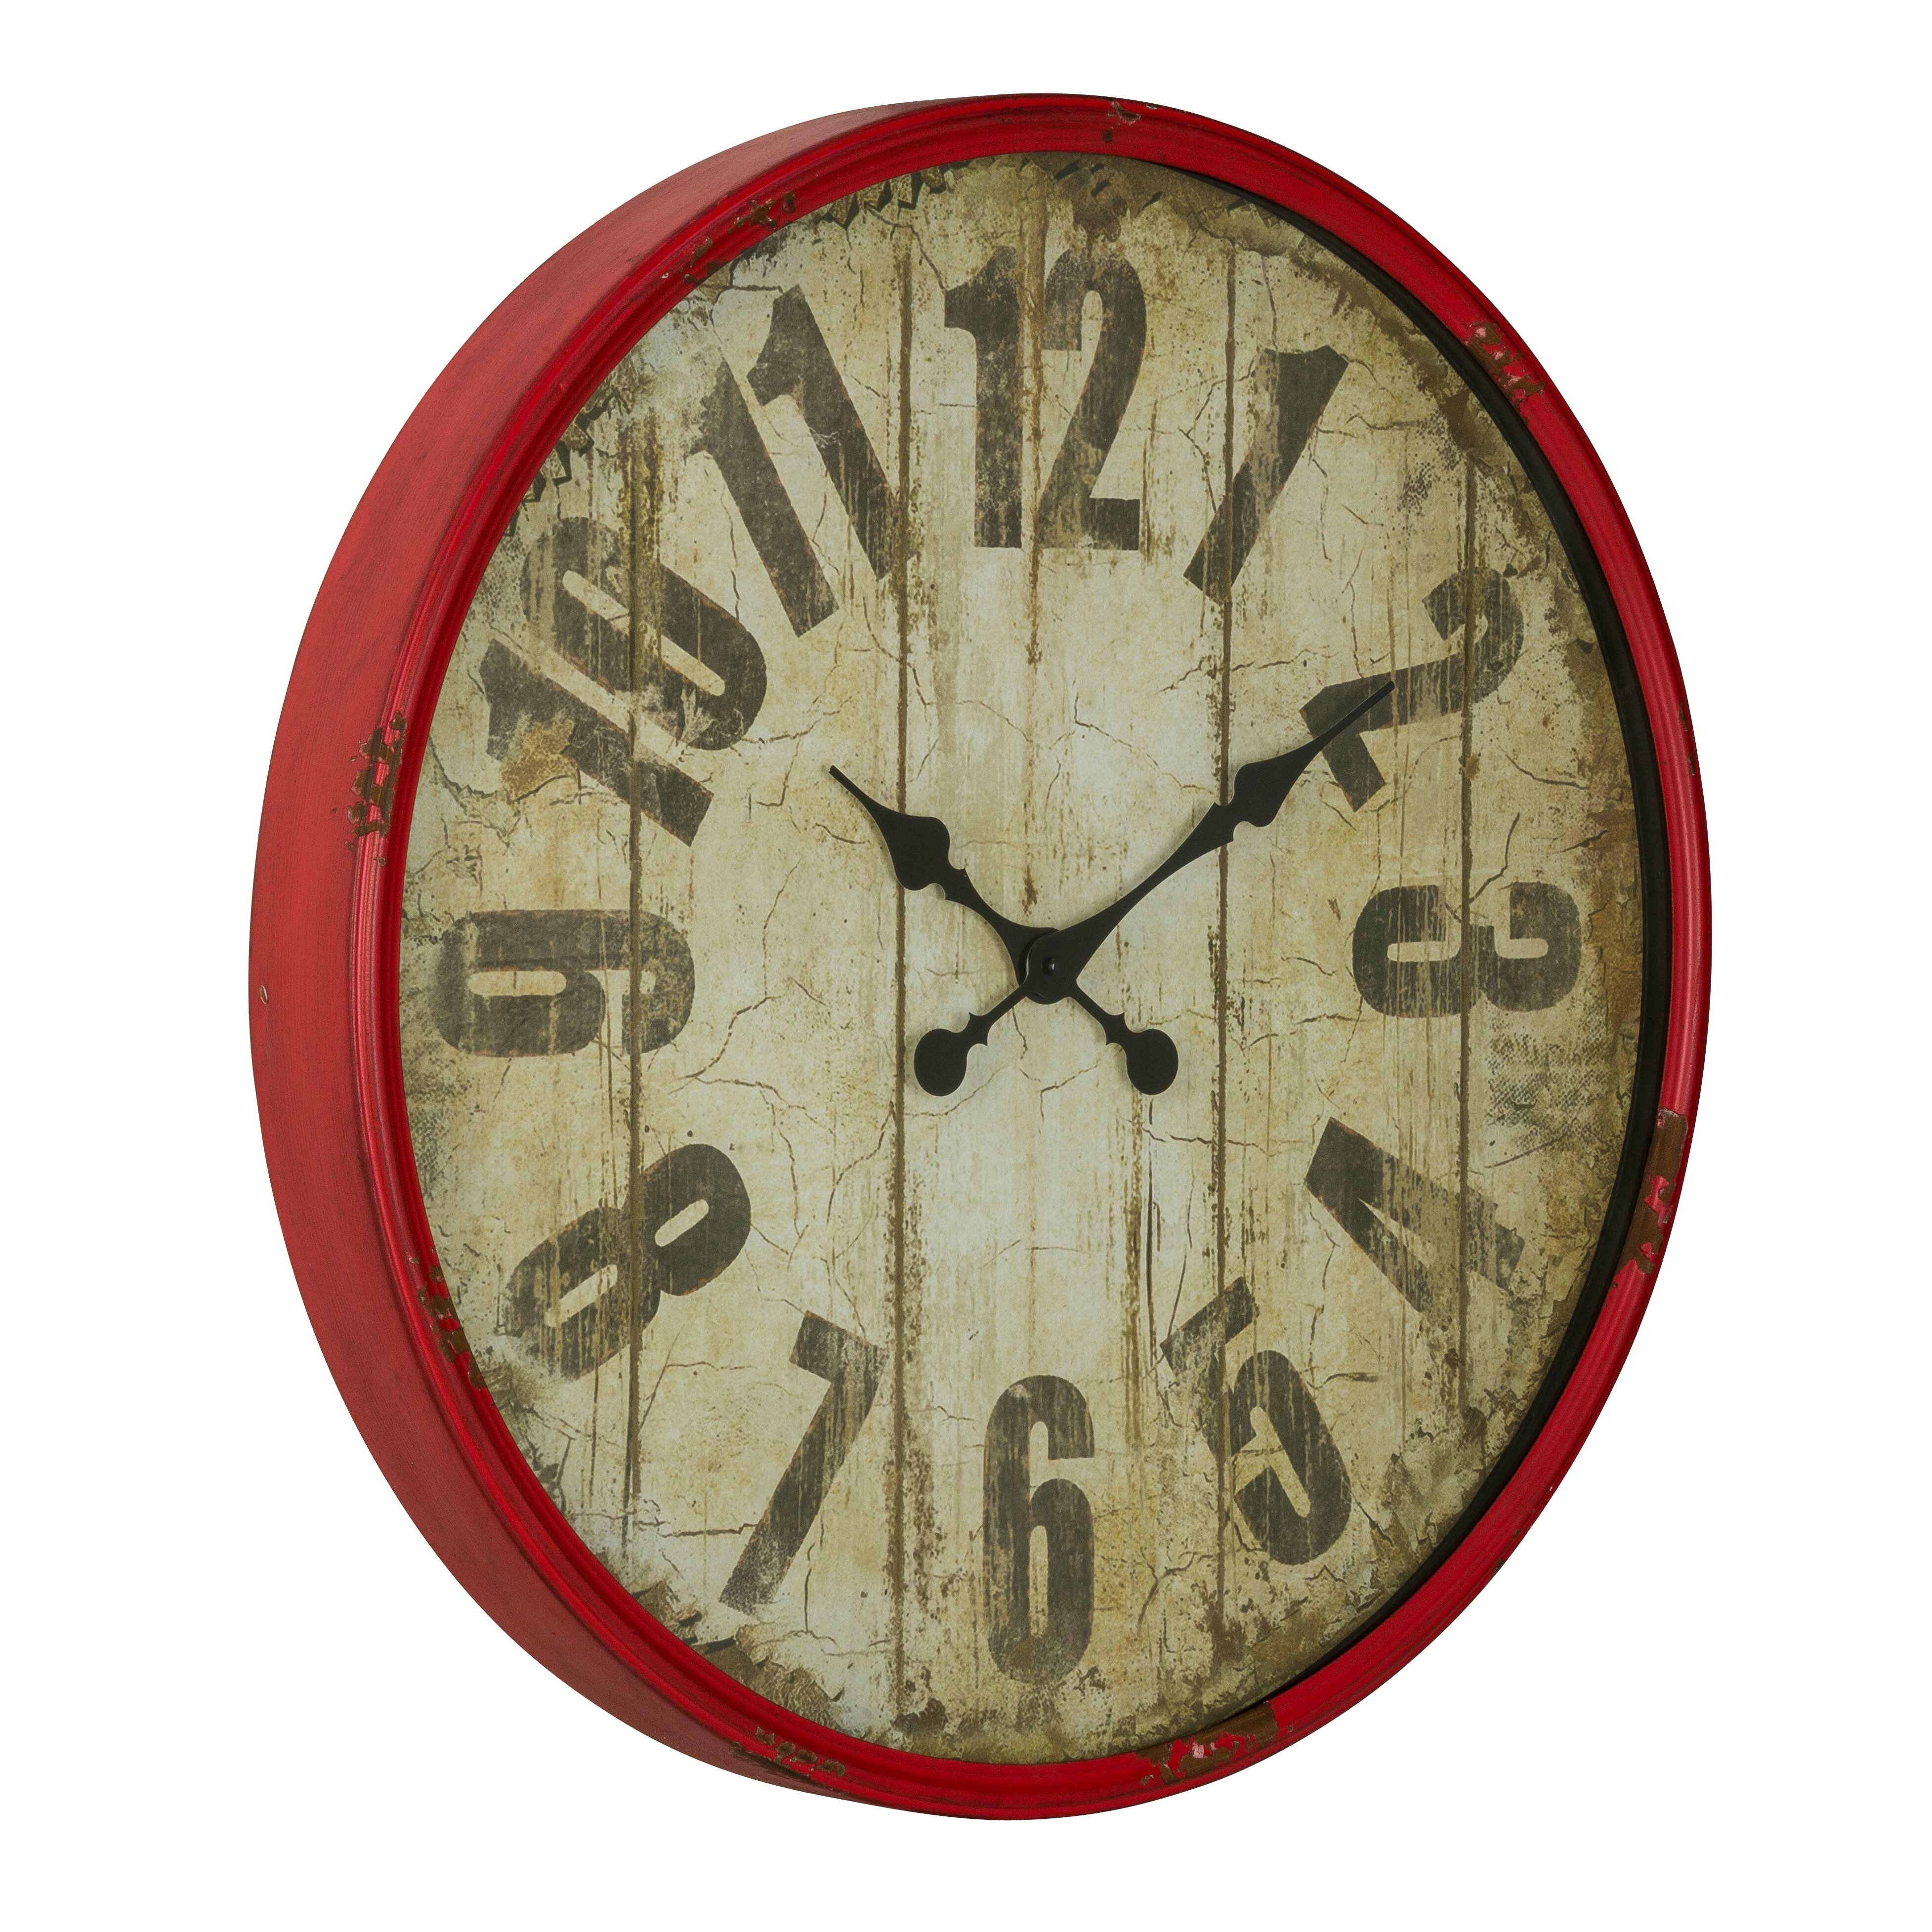 Decorative bathroom wall clocks - Top Decorative Bathroom Wall Clocks With Bathroom Wall Clocks